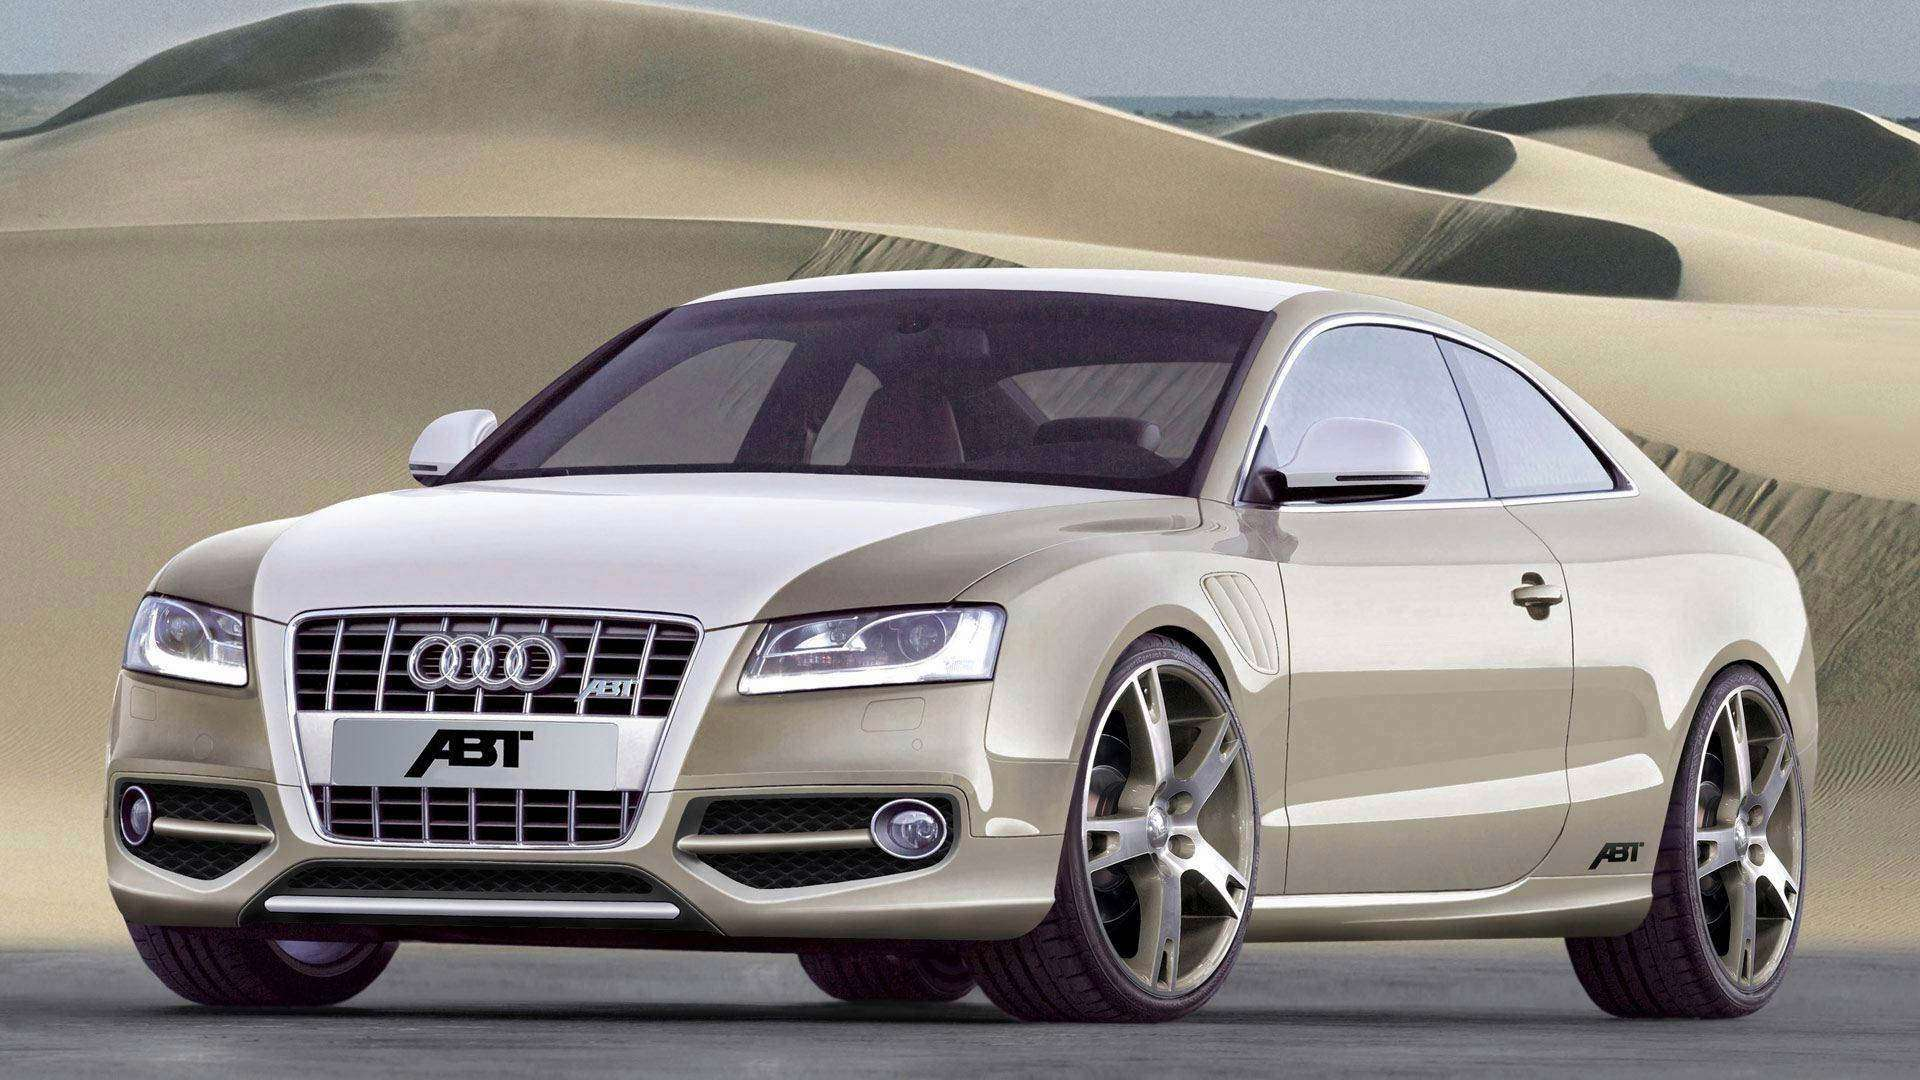 Wallpaper Audi Cars HD Wallpapers - Audi car background